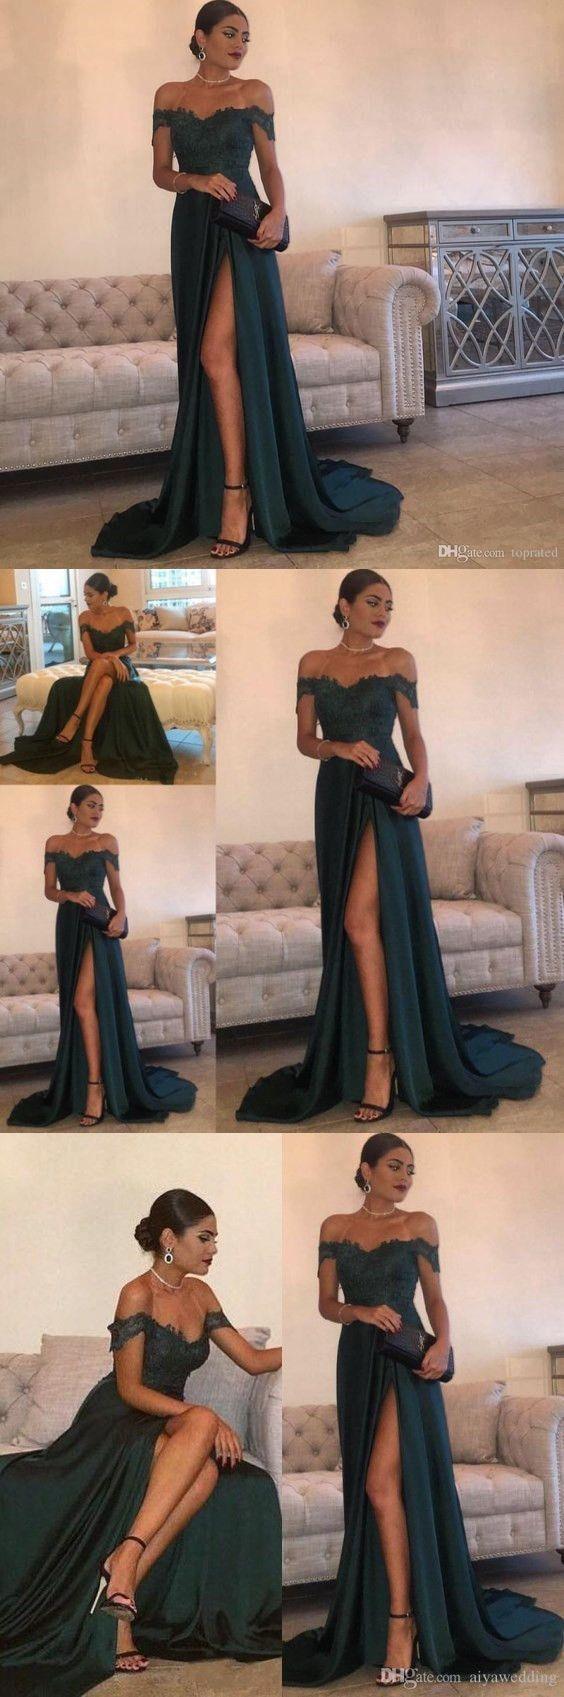 9207c9394095 ... Sexy Off Shoulder Long Party Dress 0856. by RosyProm. A-Line Hunter  Green/Royal Blue Evening Dress, Chiffon High Split Lace Top